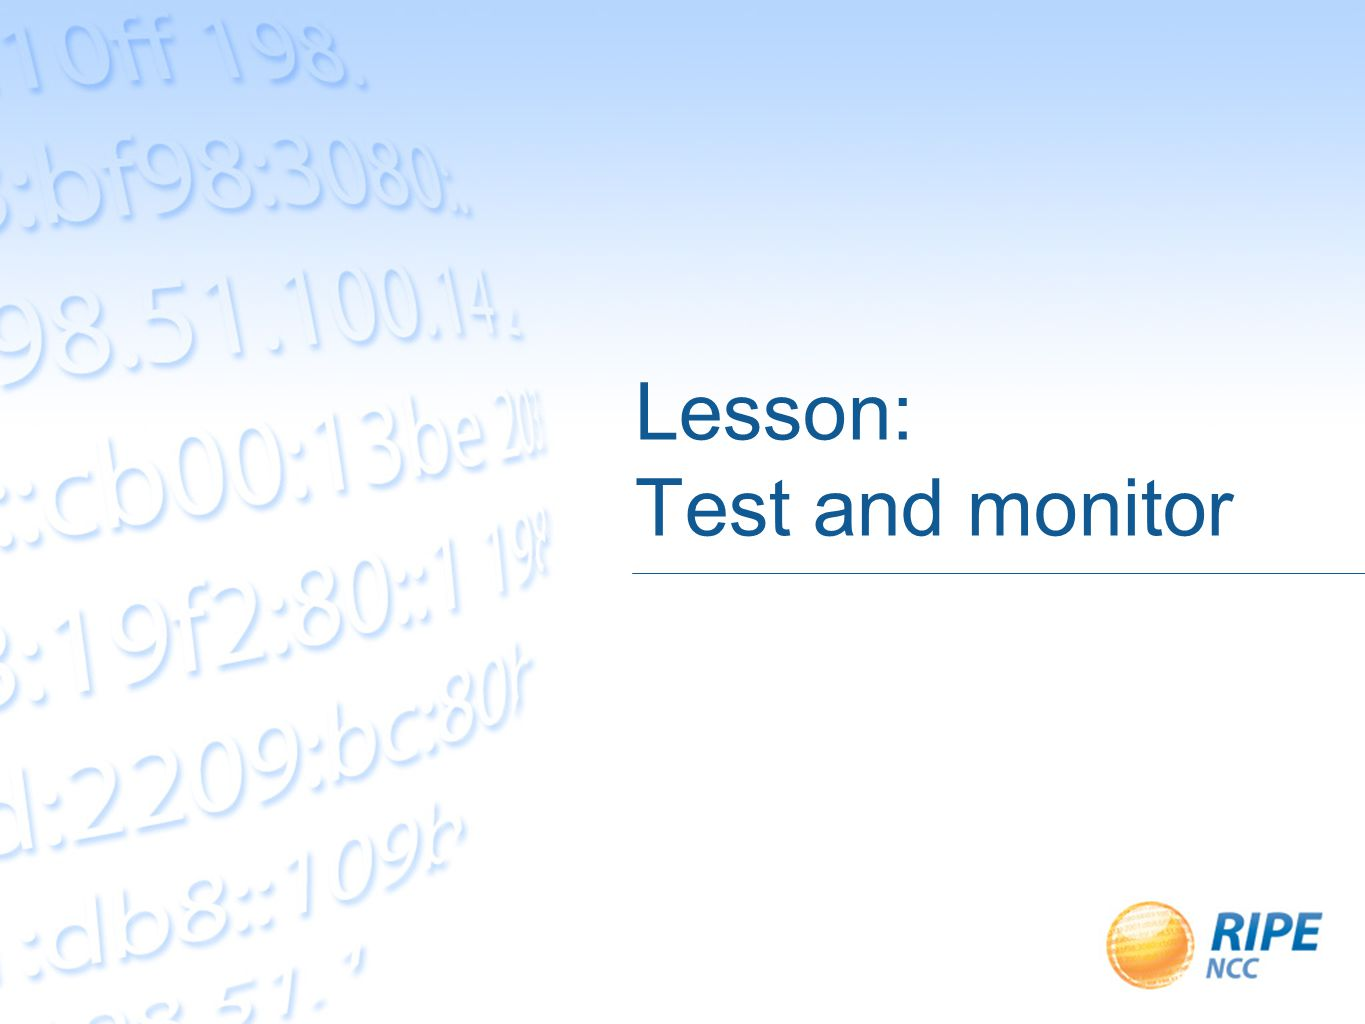 Lesson: Test and monitor